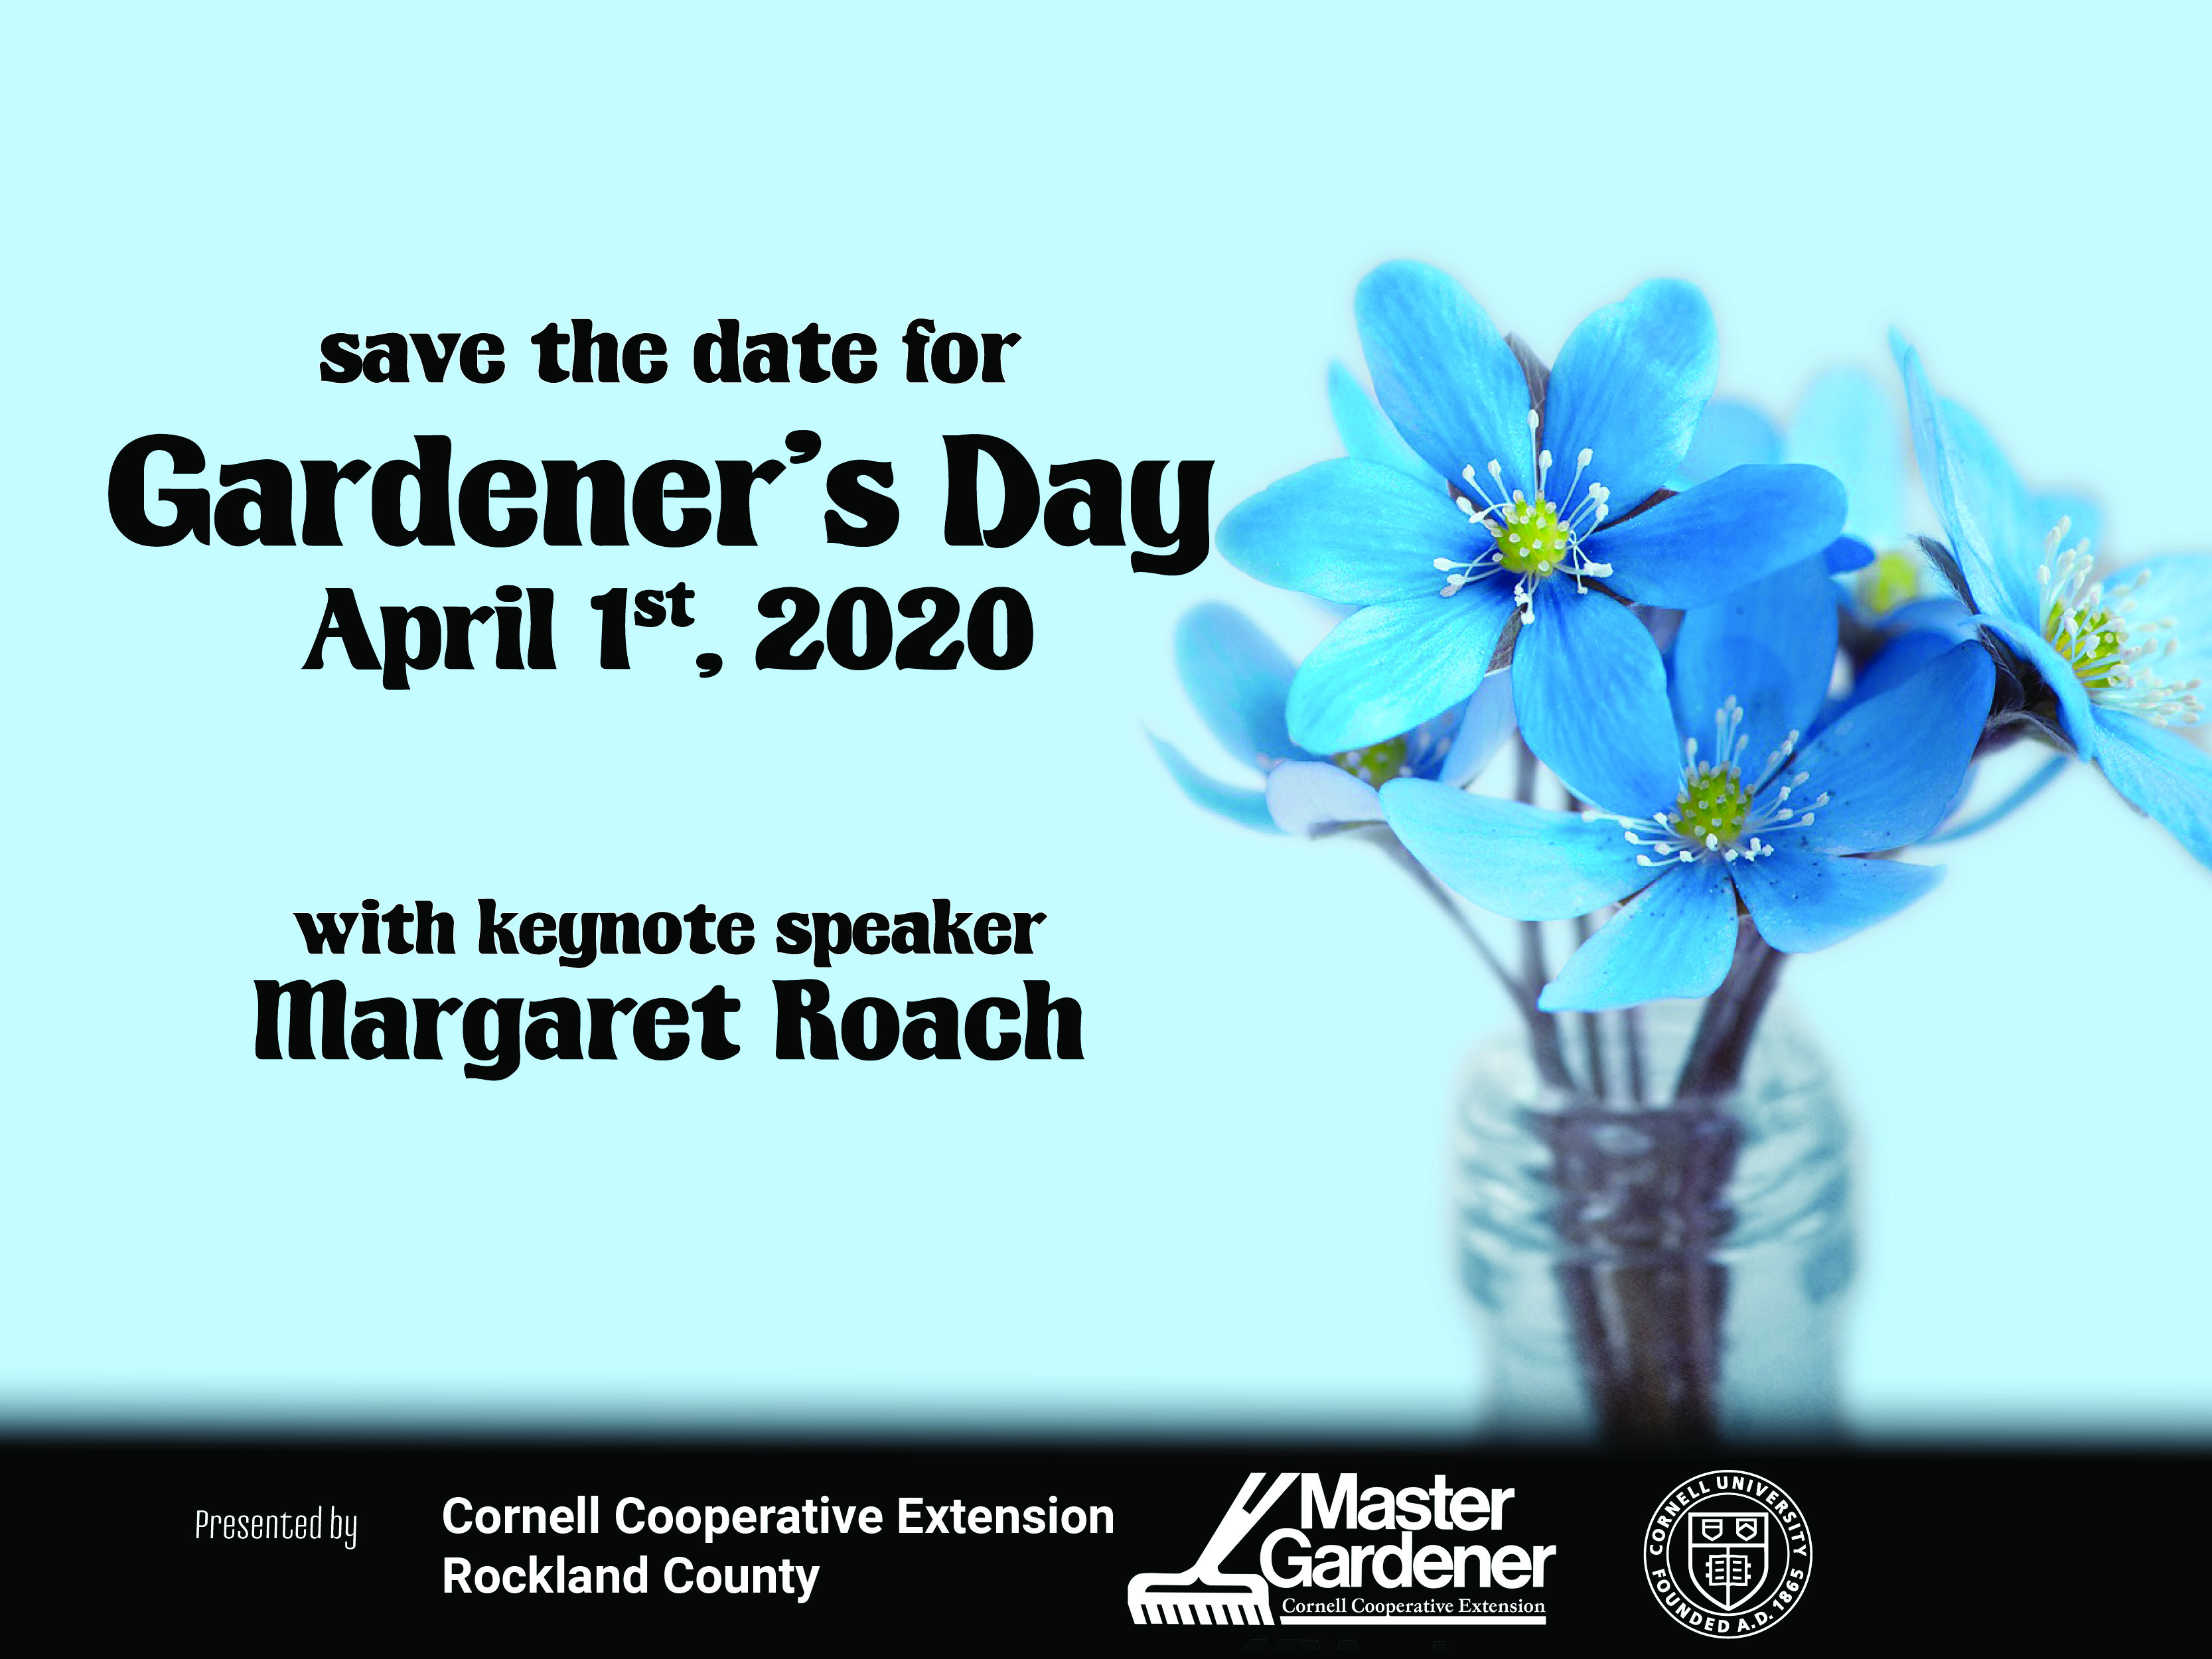 Save the Date for Gardener's Day 2020 on April 1st with keynote speaker Margaret Roach